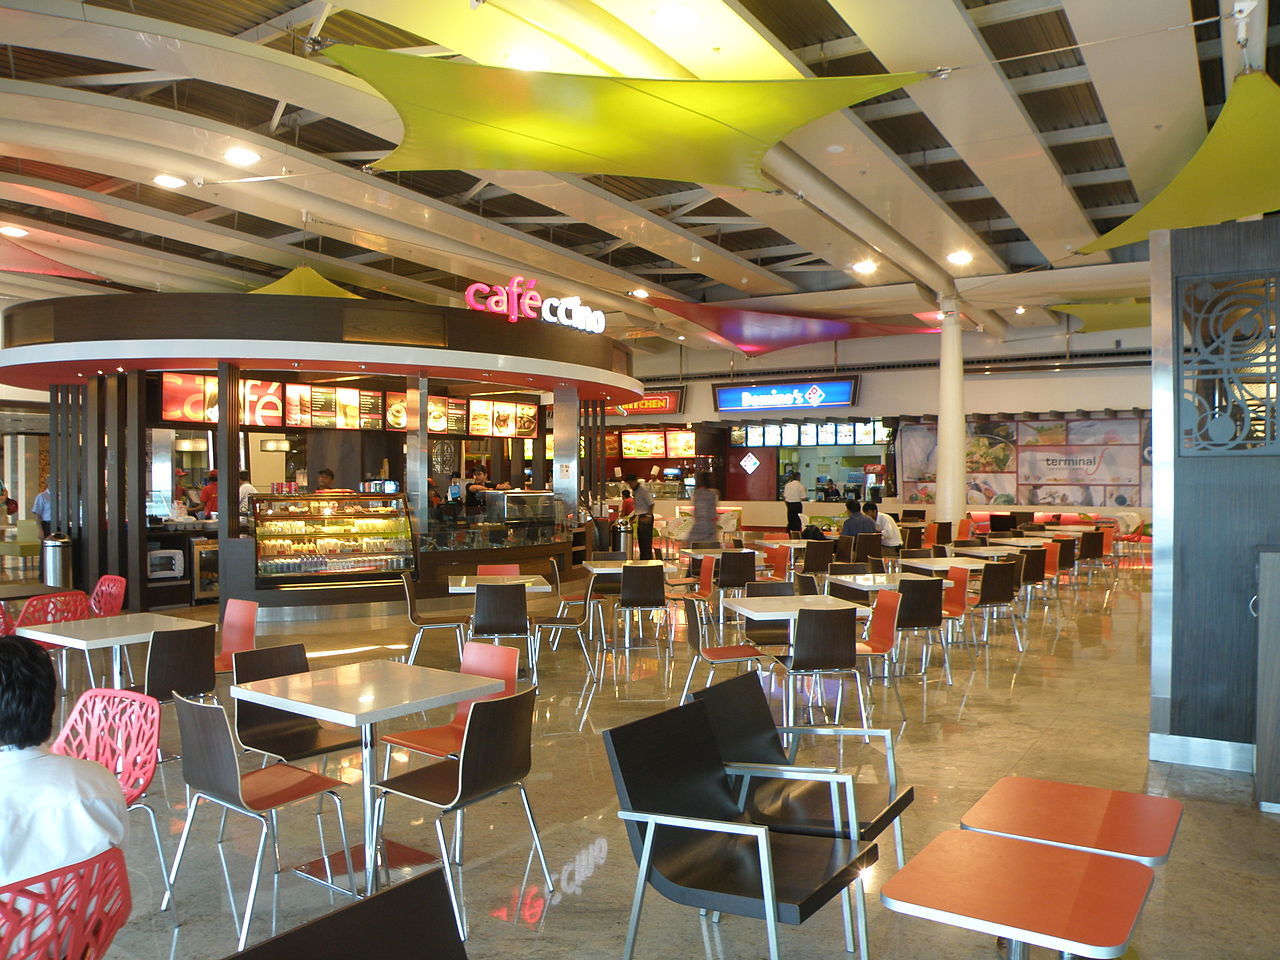 File:Terminal food court between terminals 1A and 1C at ...